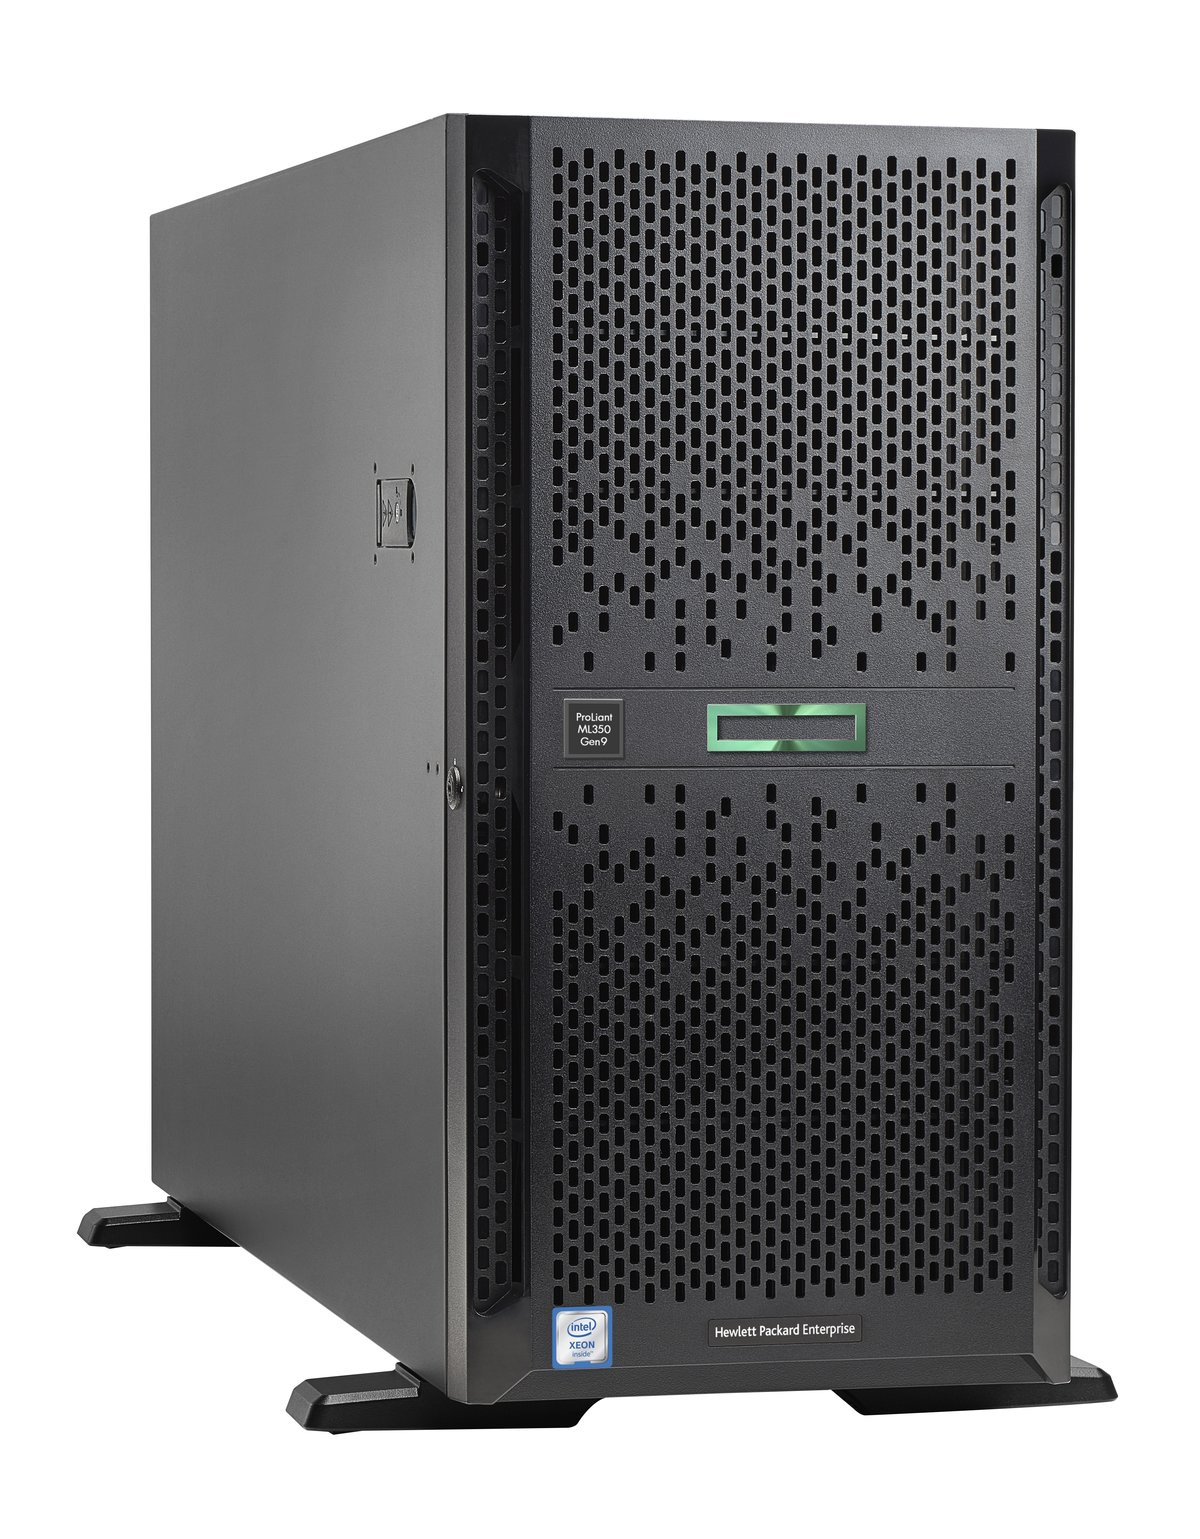 slide 3 of 5,show larger image, hpe proliant ml350 gen9 e5-2640v4 1p 16gb-r p440ar 8sff 2x800w ps server/s-buy